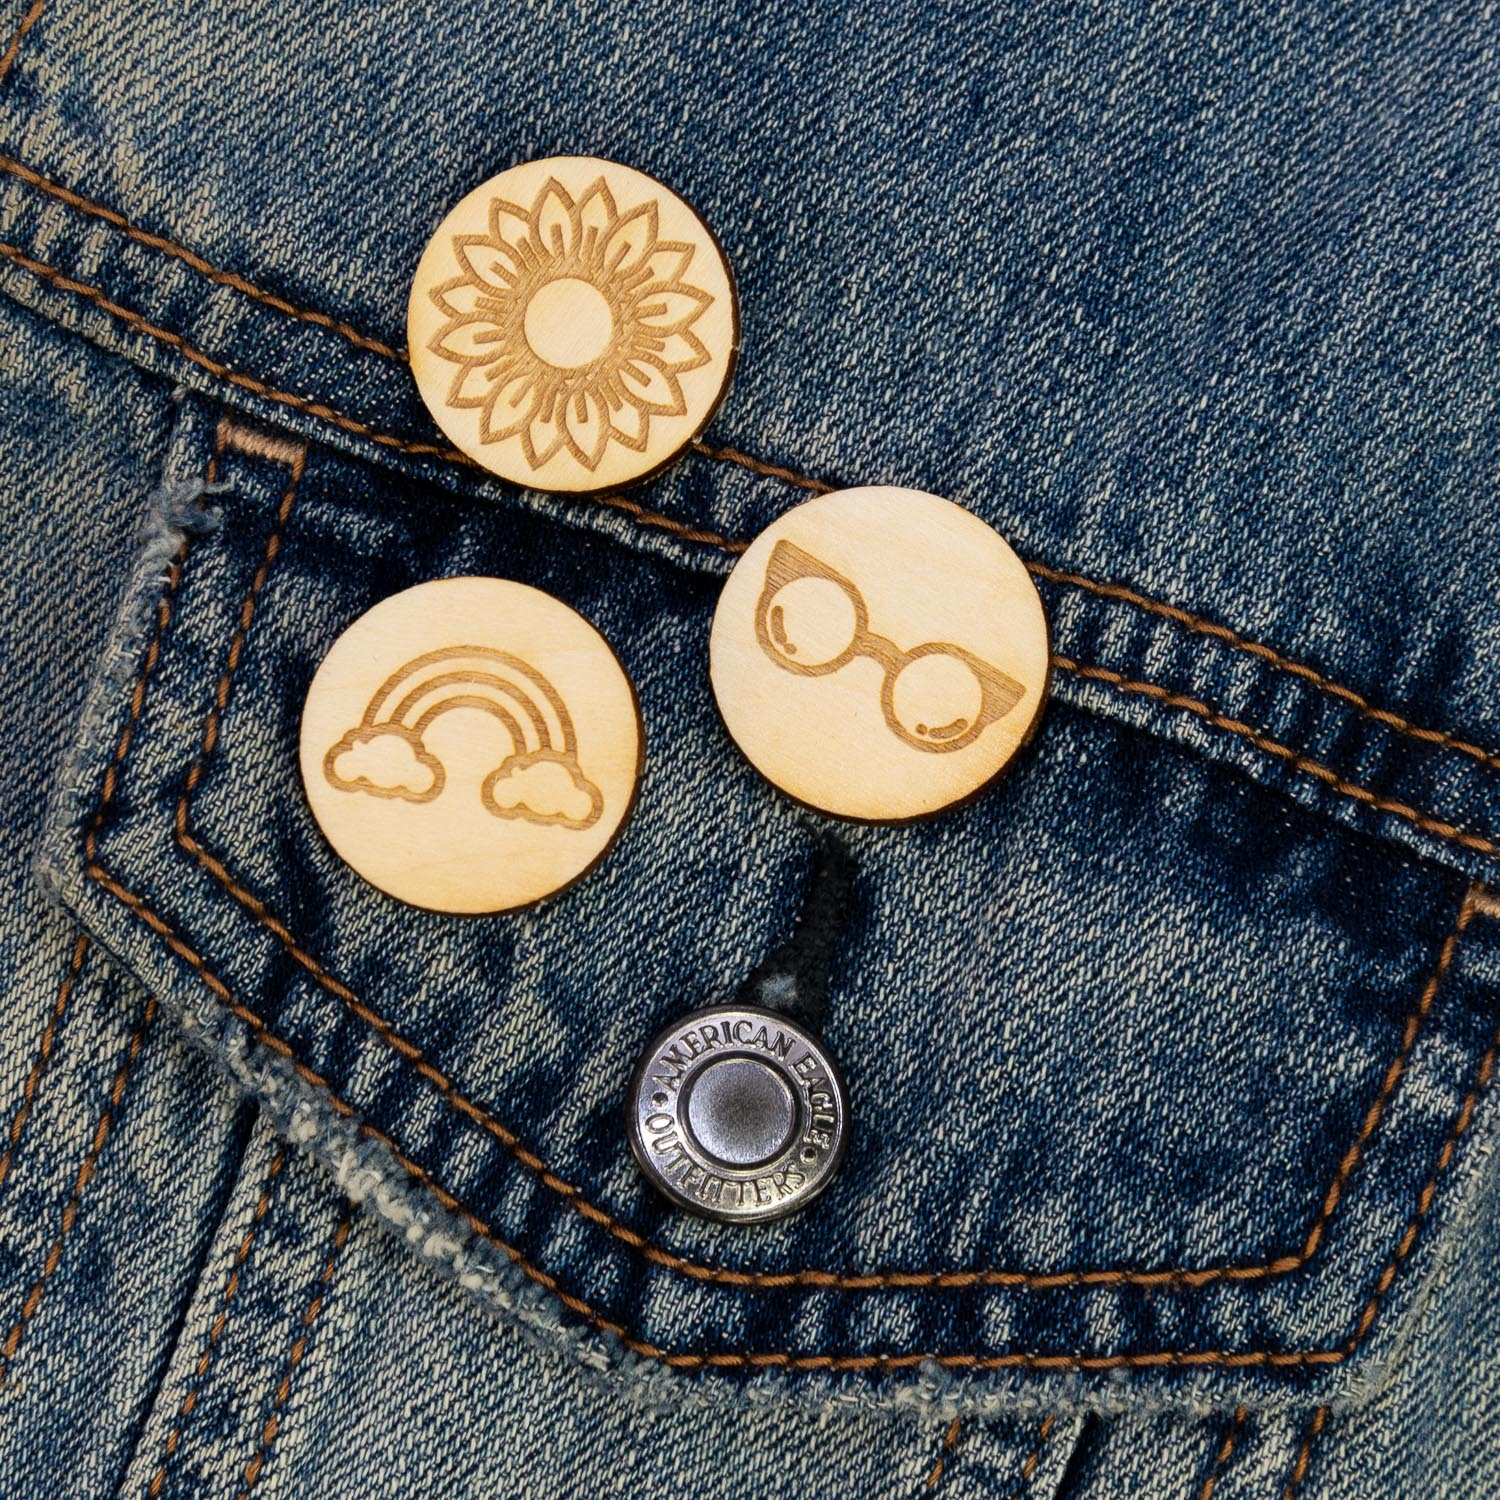 Laser engraved lapel pins on a jacket